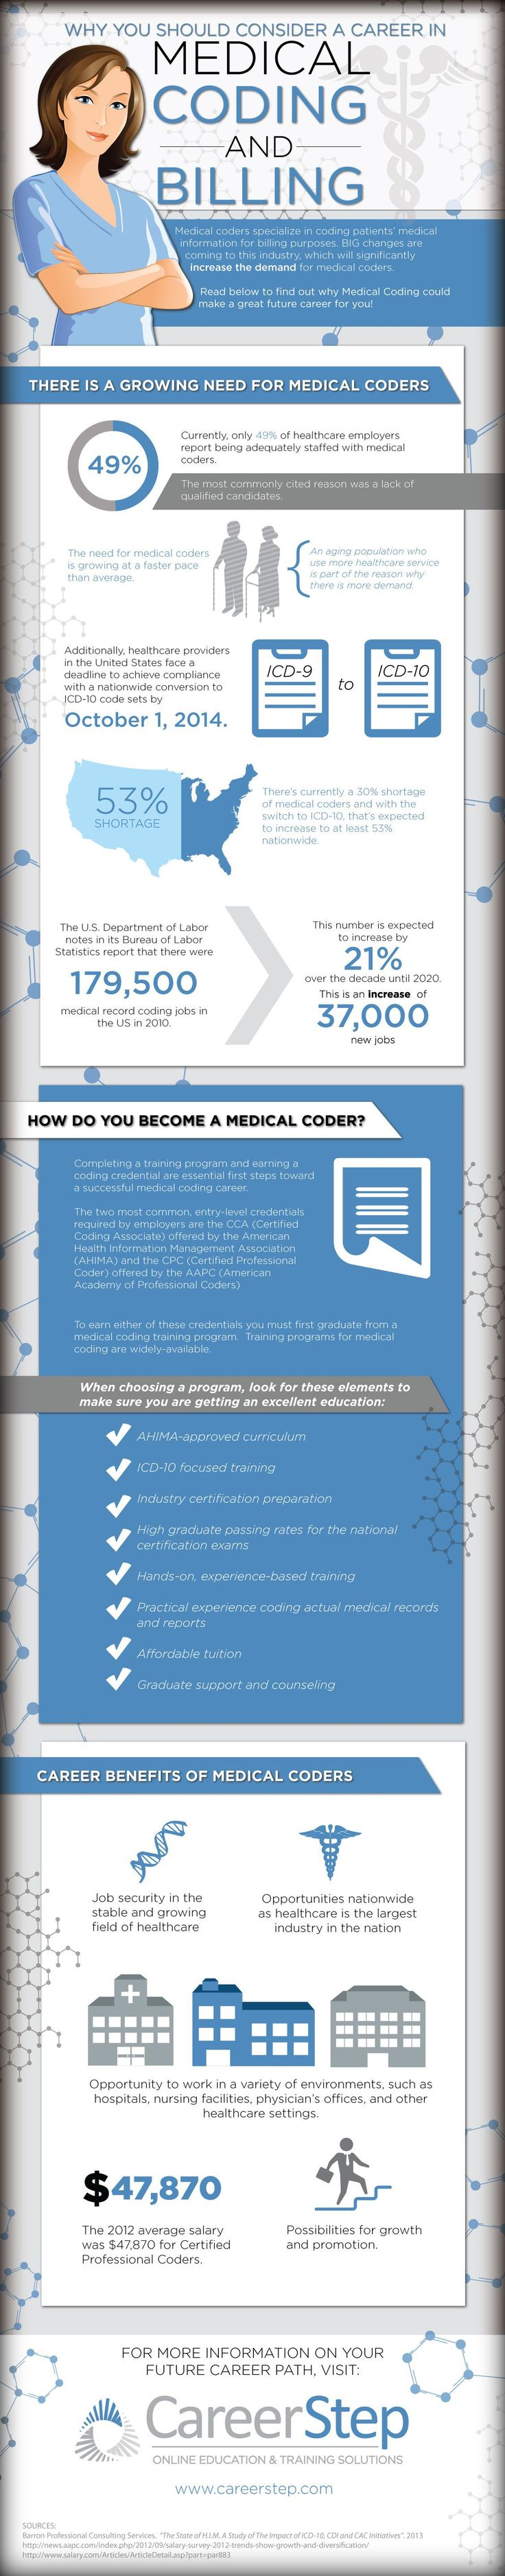 State of the Medical Coding and Billing Industry Infographic